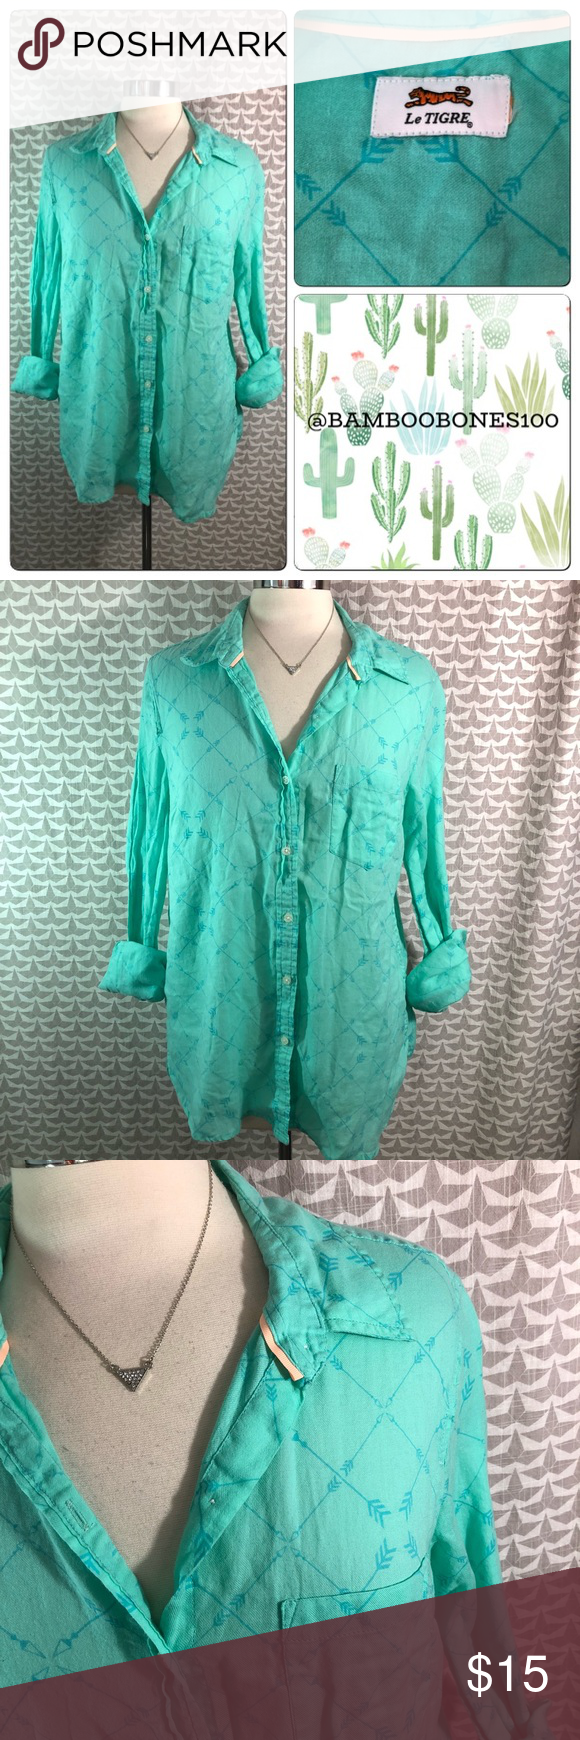 Le Tigre Mint Arrow Blouse Large Brand  Le Tigre Size  large (no tag)  Underarm to underarm (inches)  21.5 Underarm to bottom hem  14 (dips up on  the sides) ... 874e4d8d8